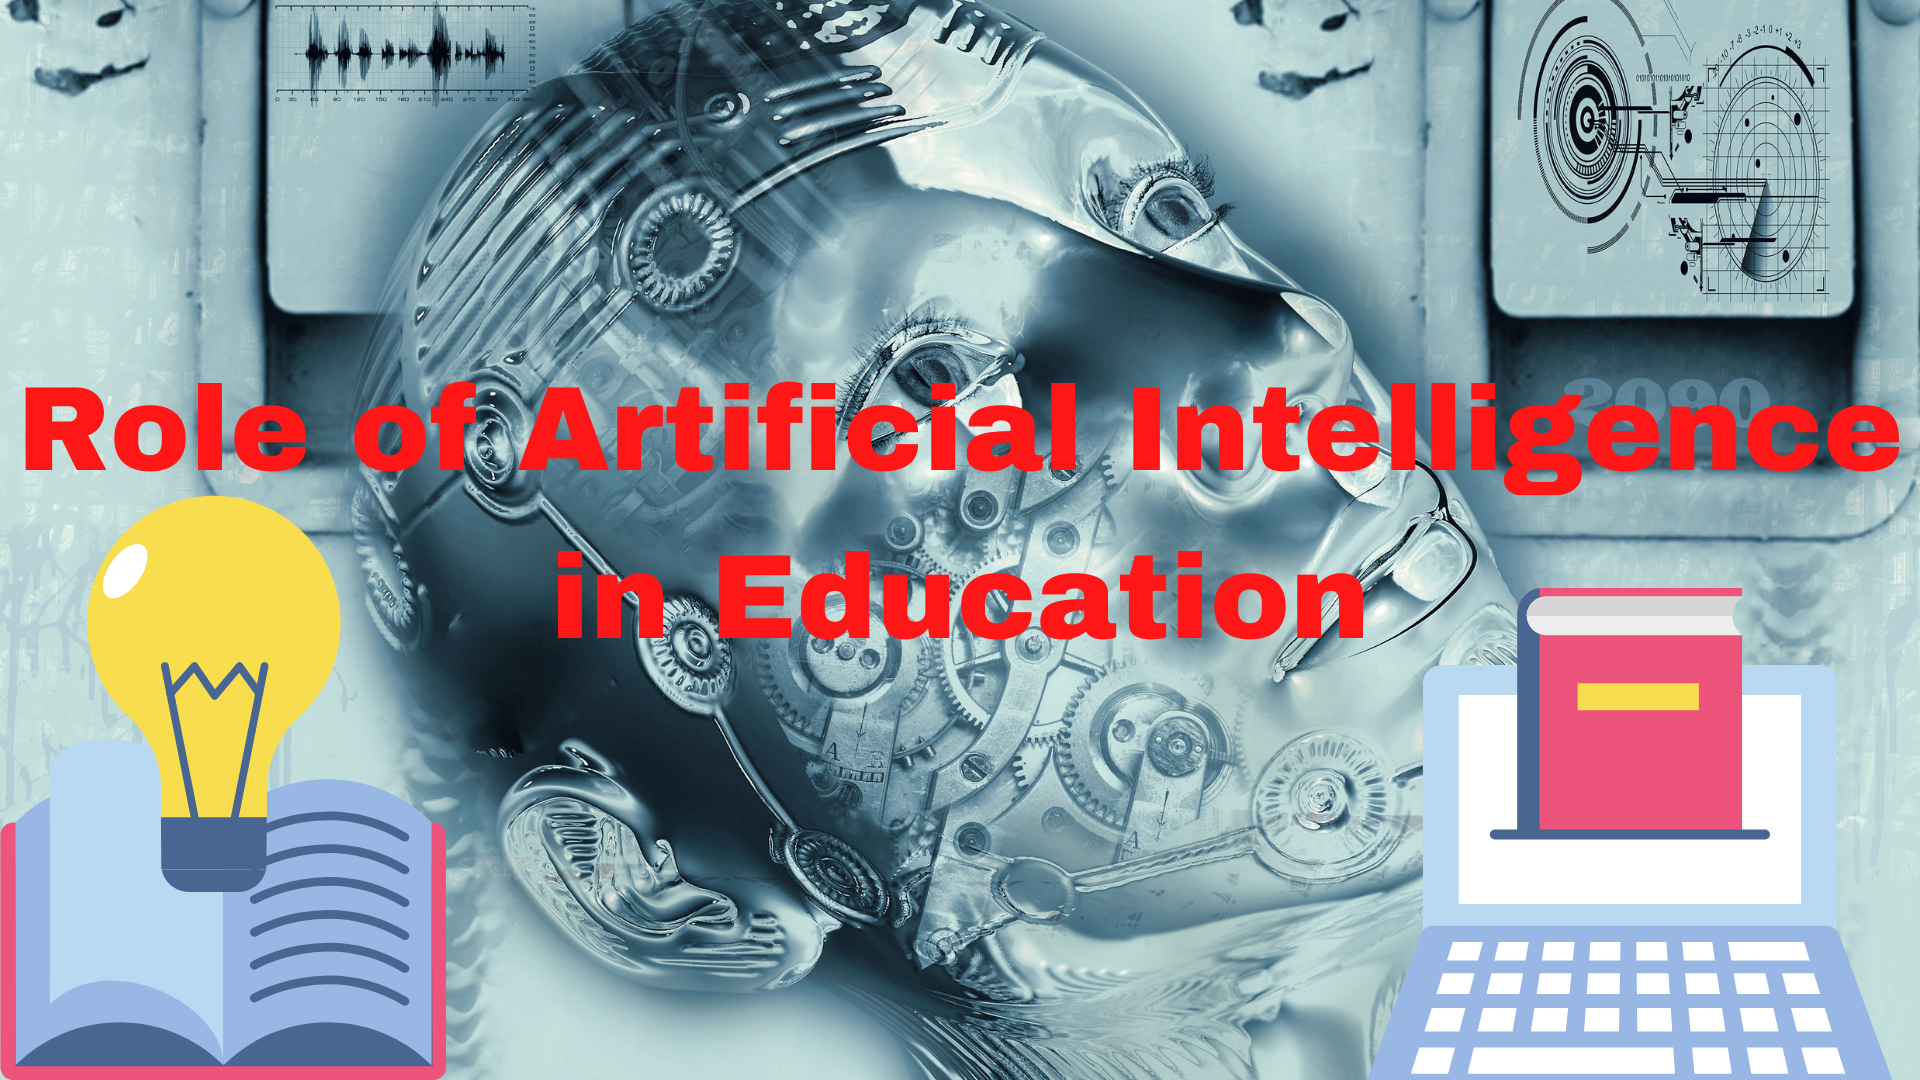 Role of Artificial Intelligence in Education